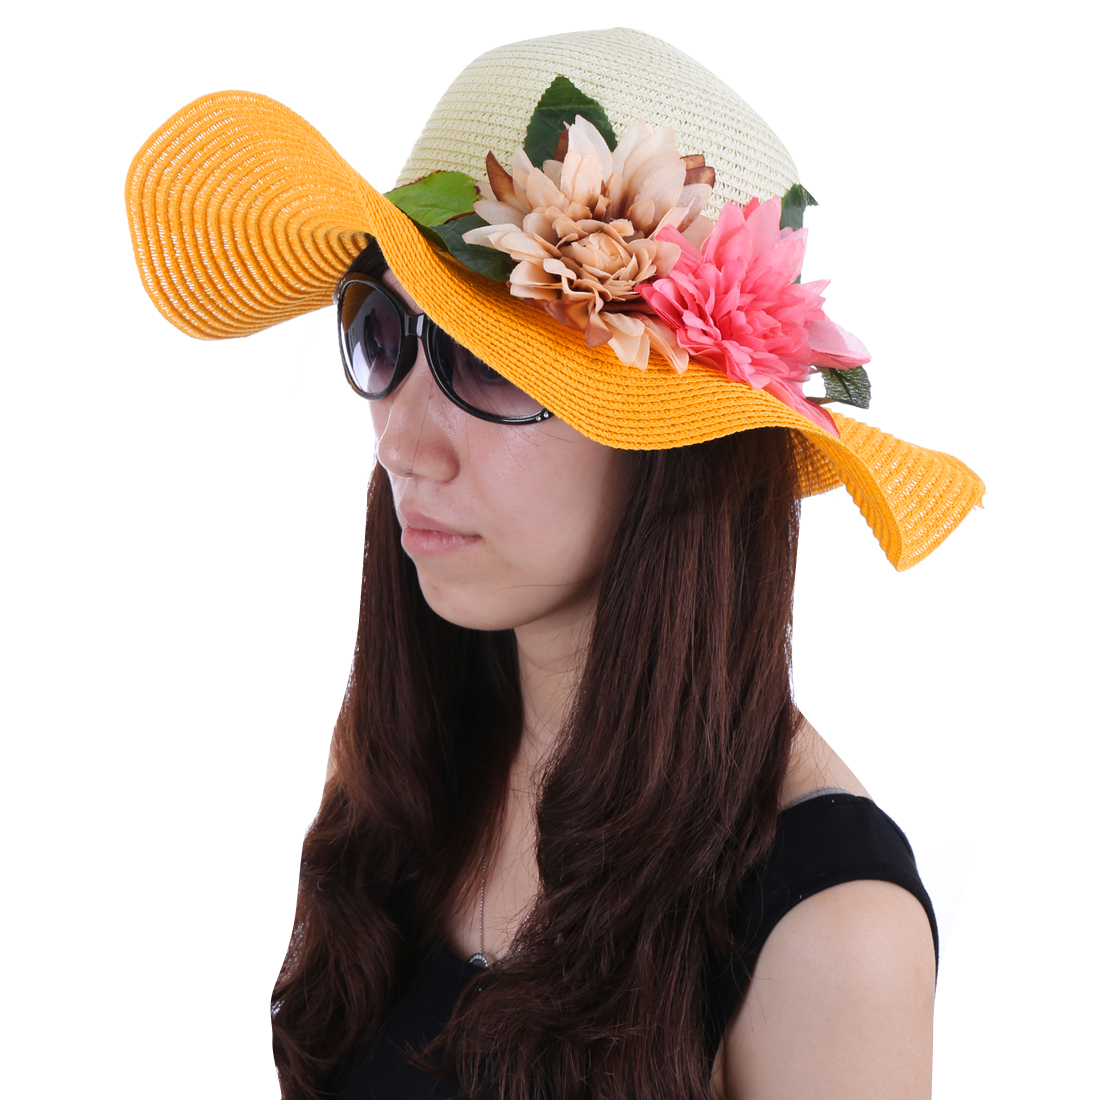 Women Braided Strap Detail Panel Hat Yellow White